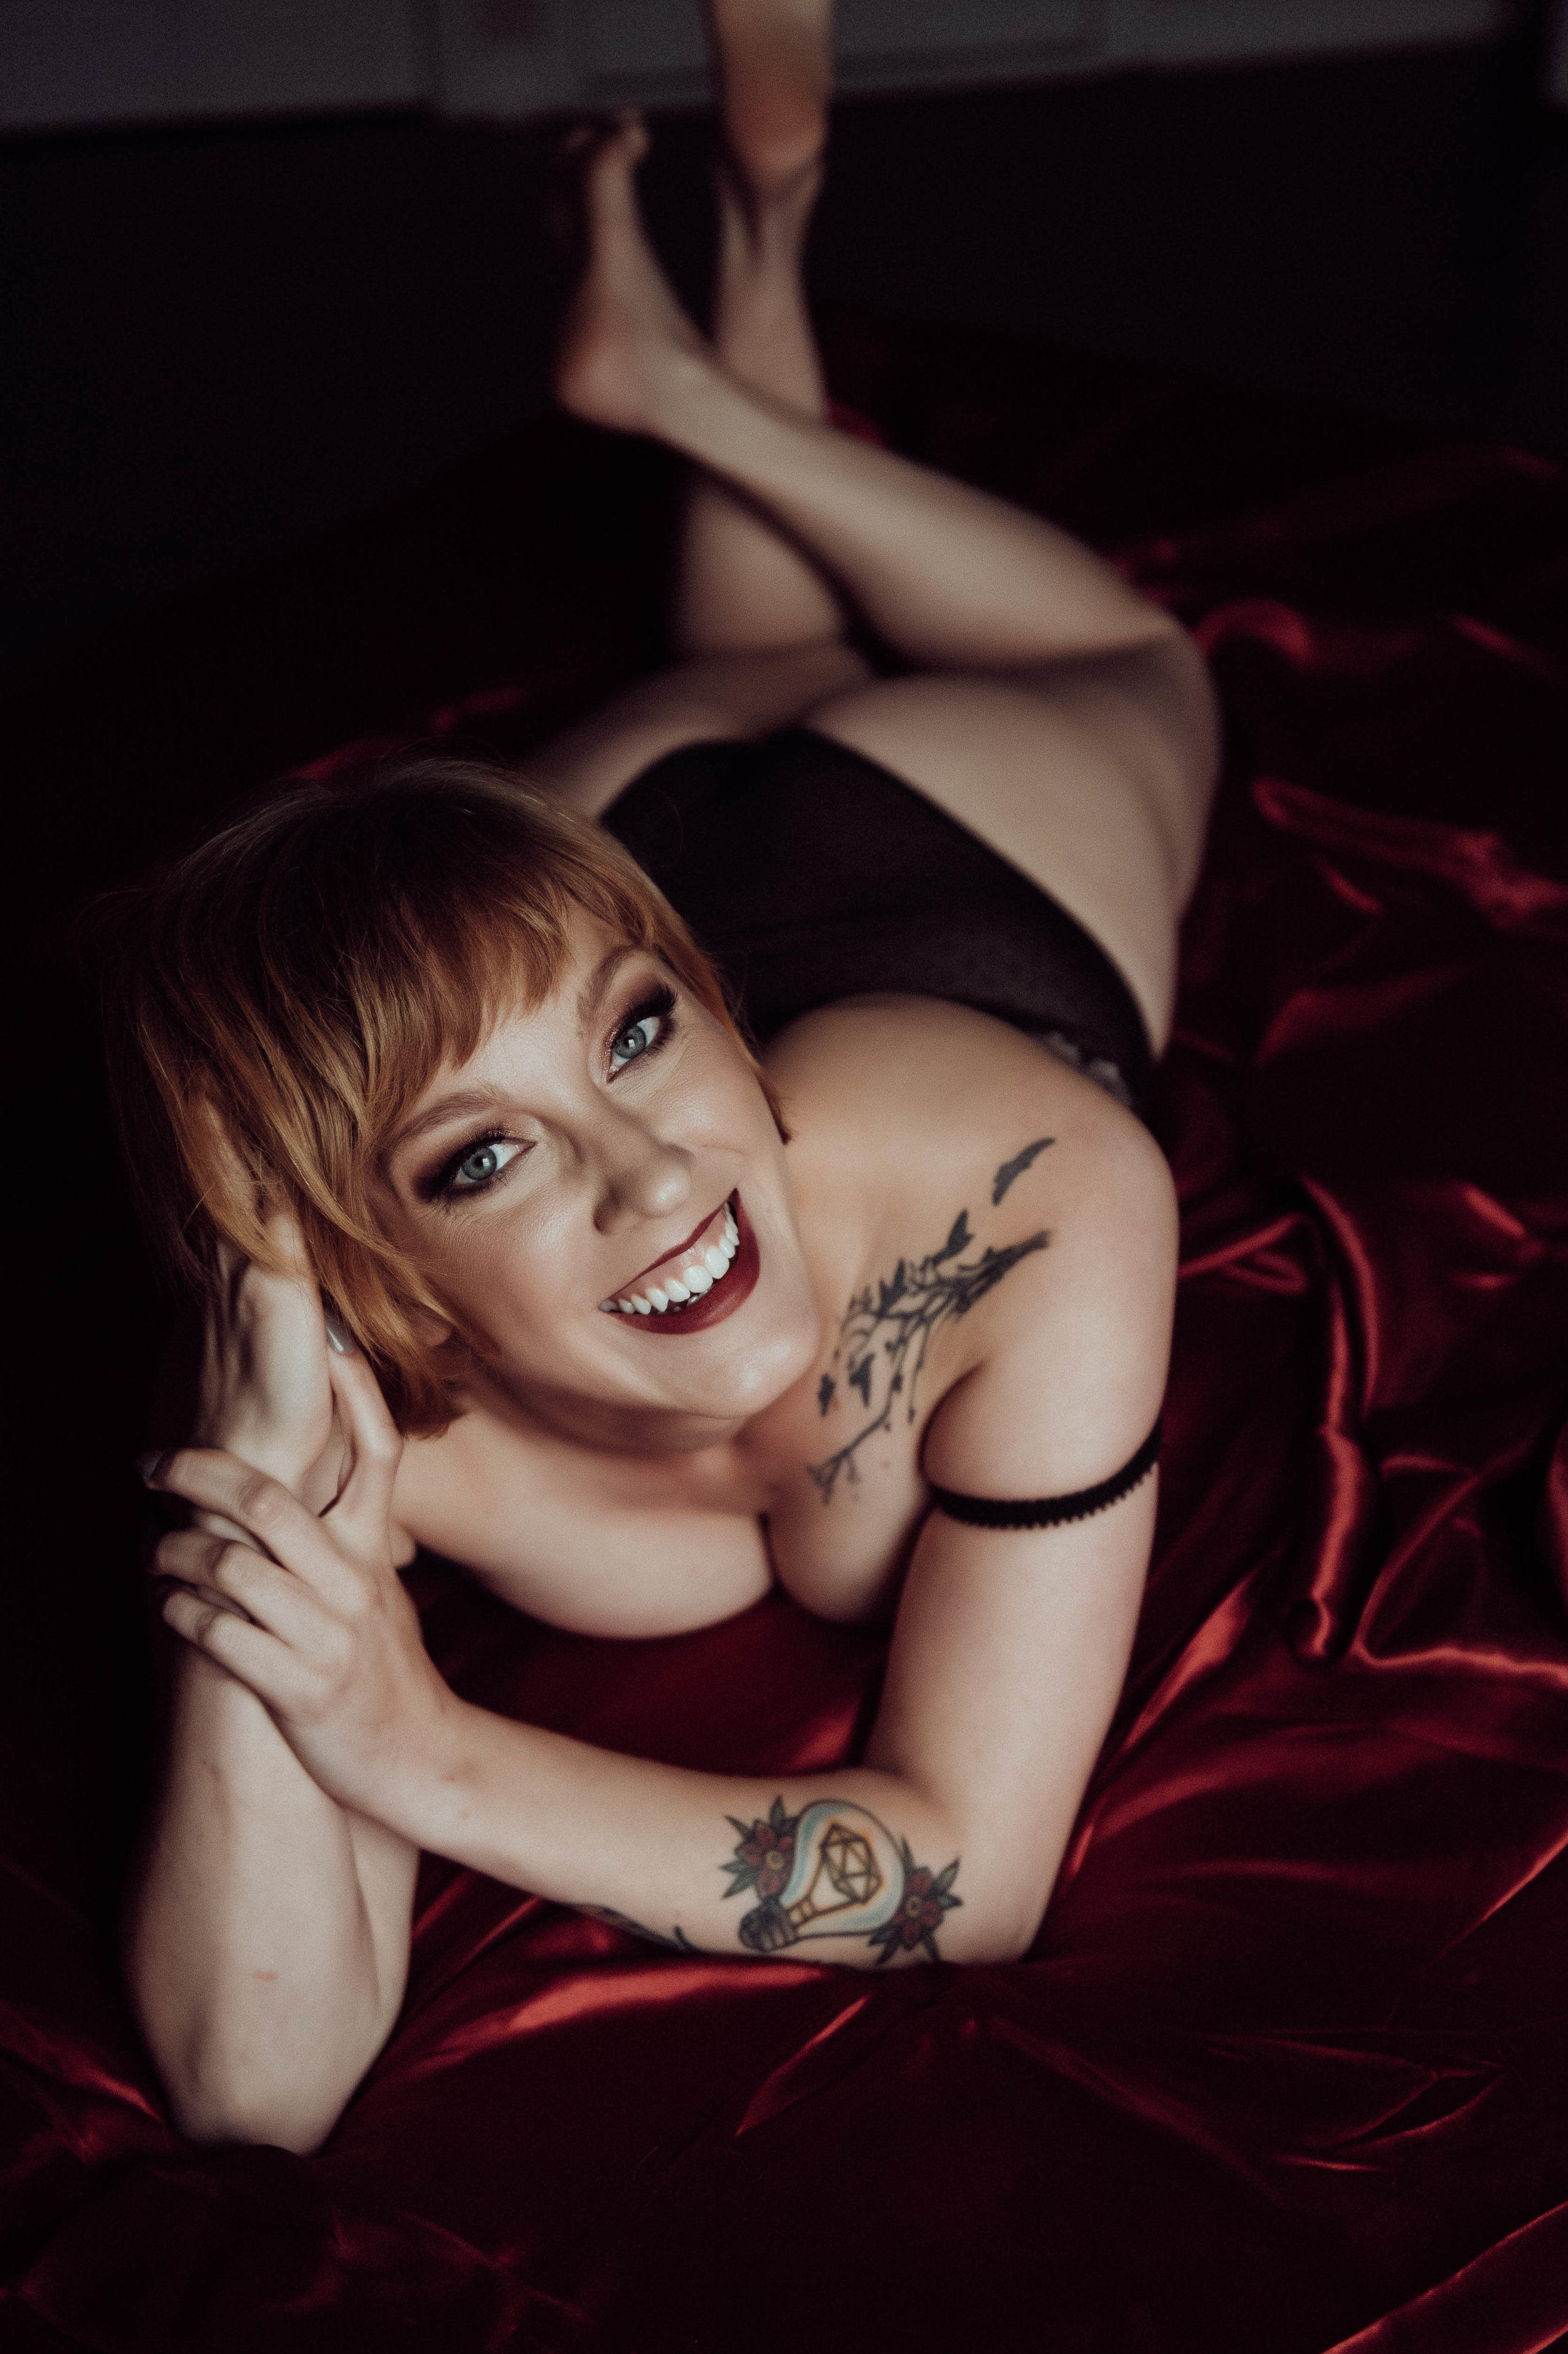 Smiling redhead woman on red sheets laying on stomach lace bodysuit boudoir photography new york city studio